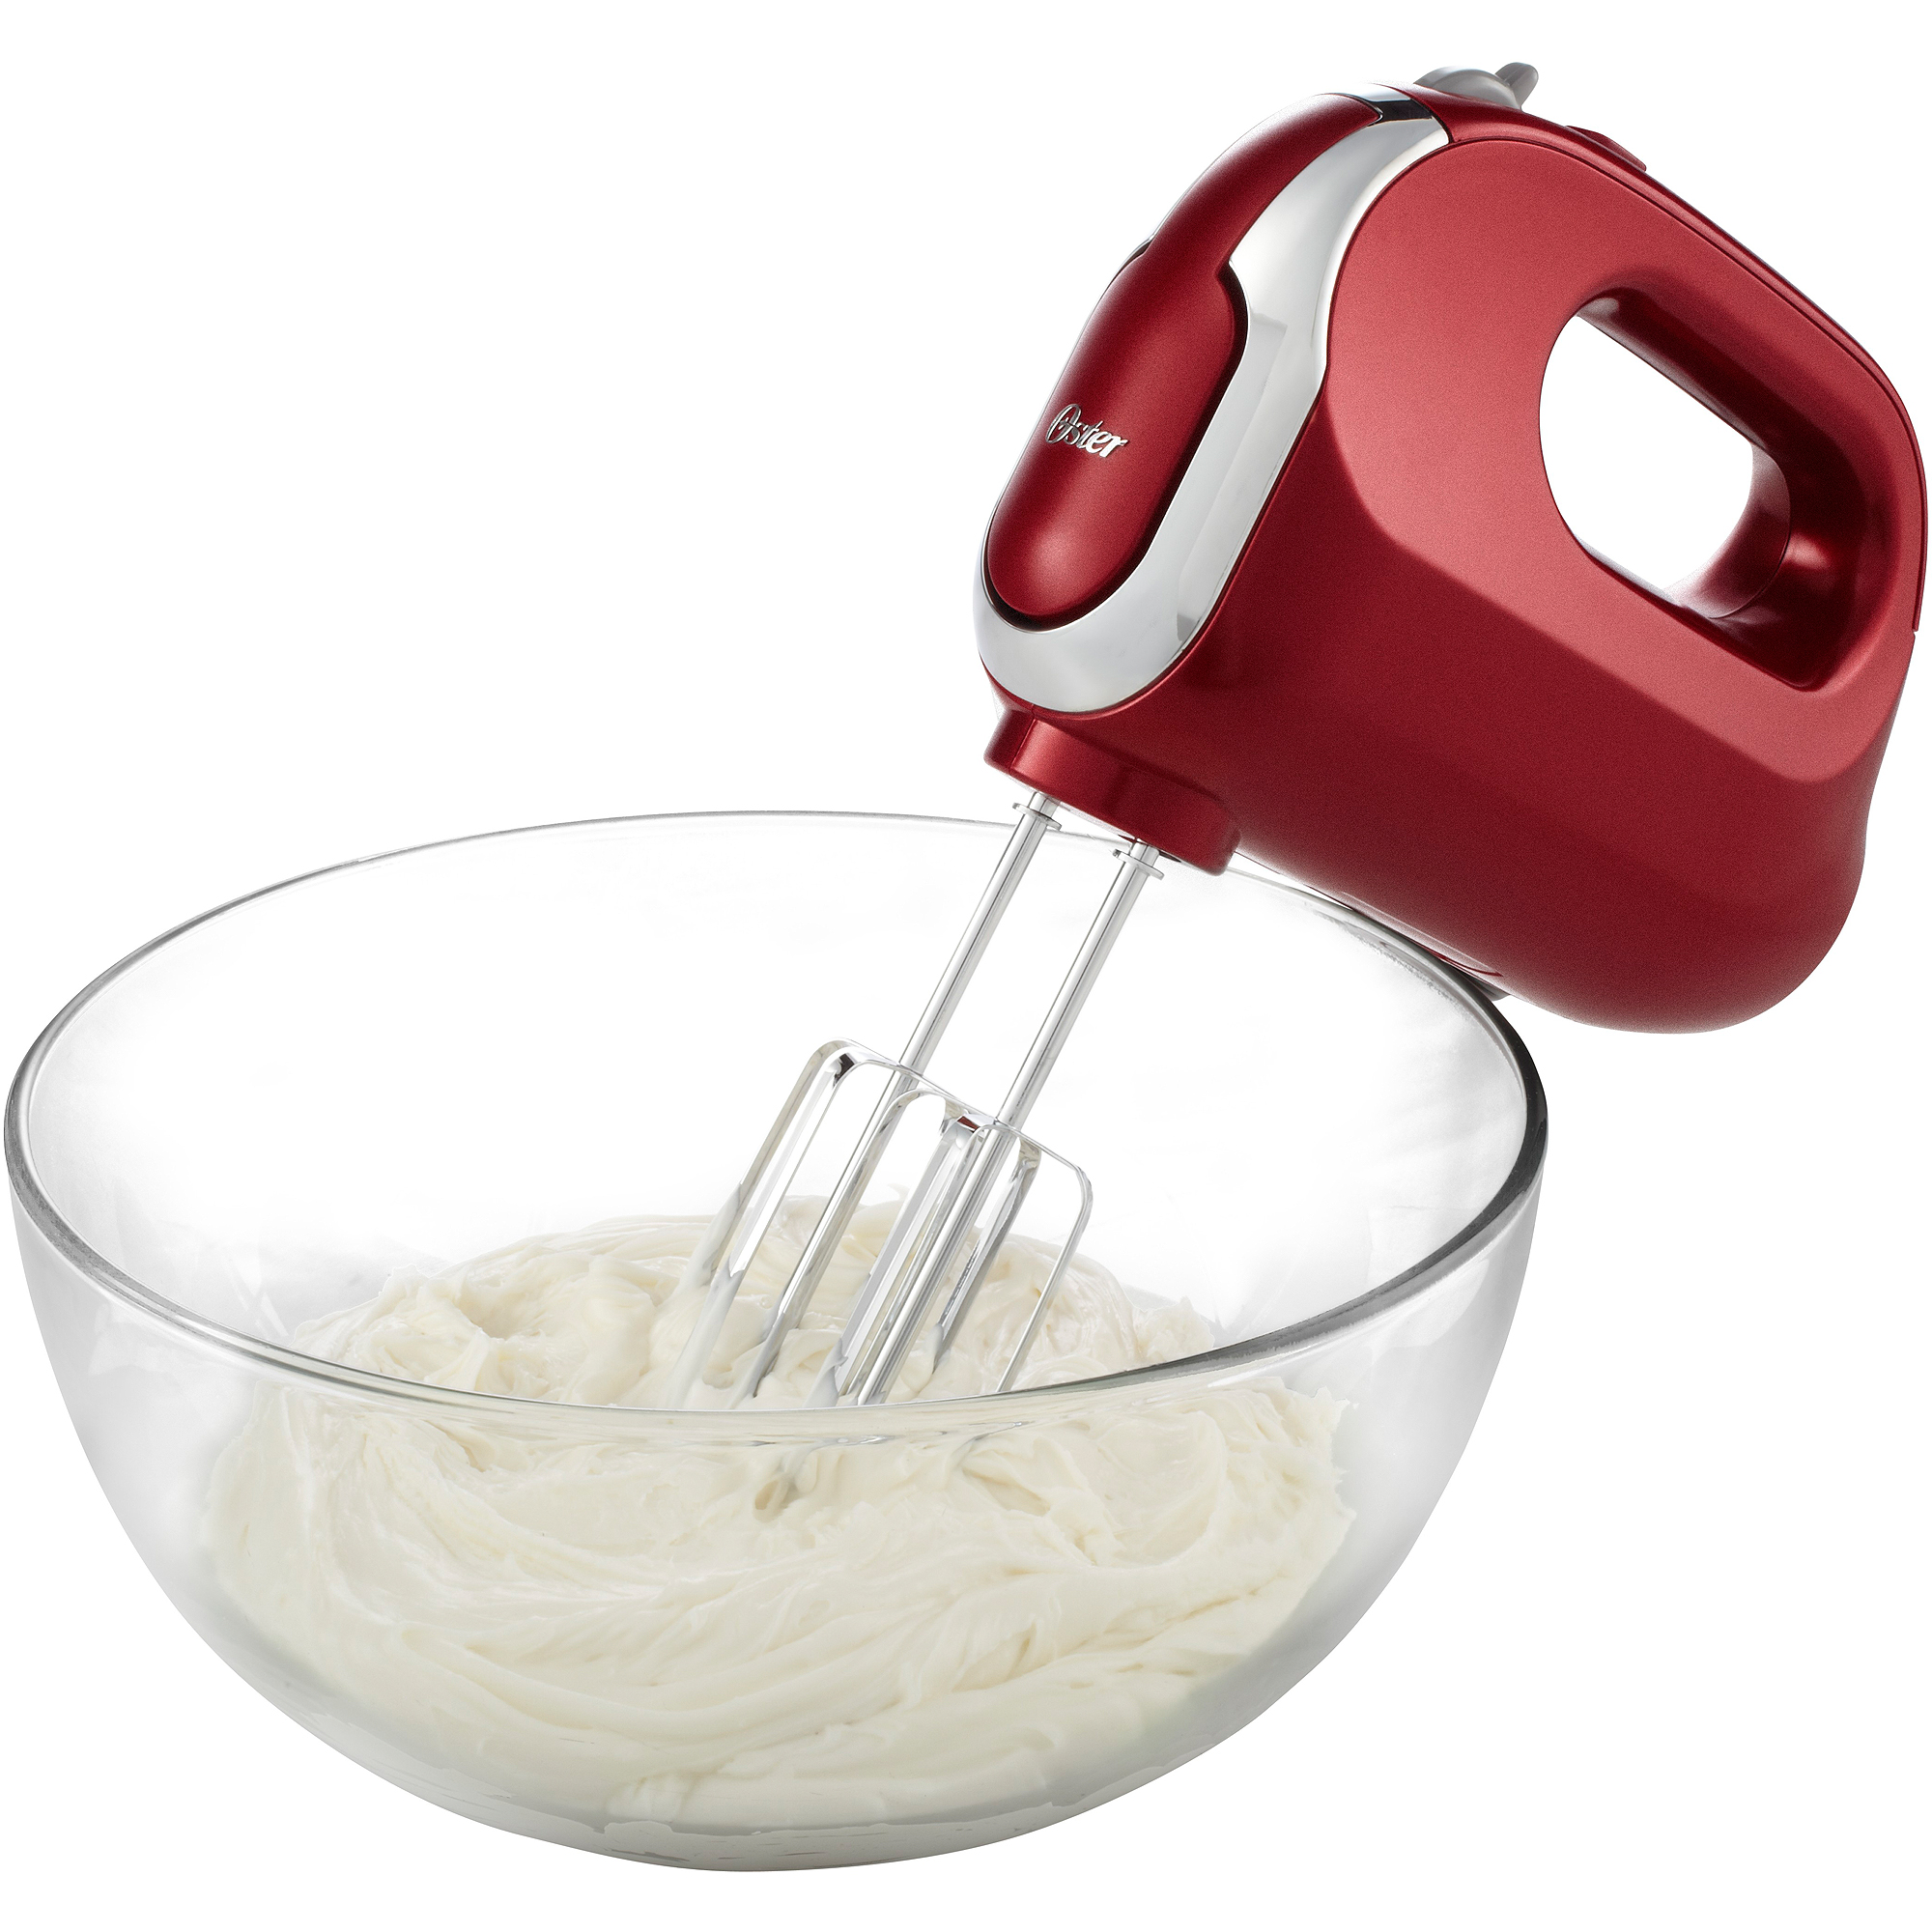 Oster 7-Speed Clean Start Hand Mixer with Storage Case plus Super Aerator Whisk Attachment, Red